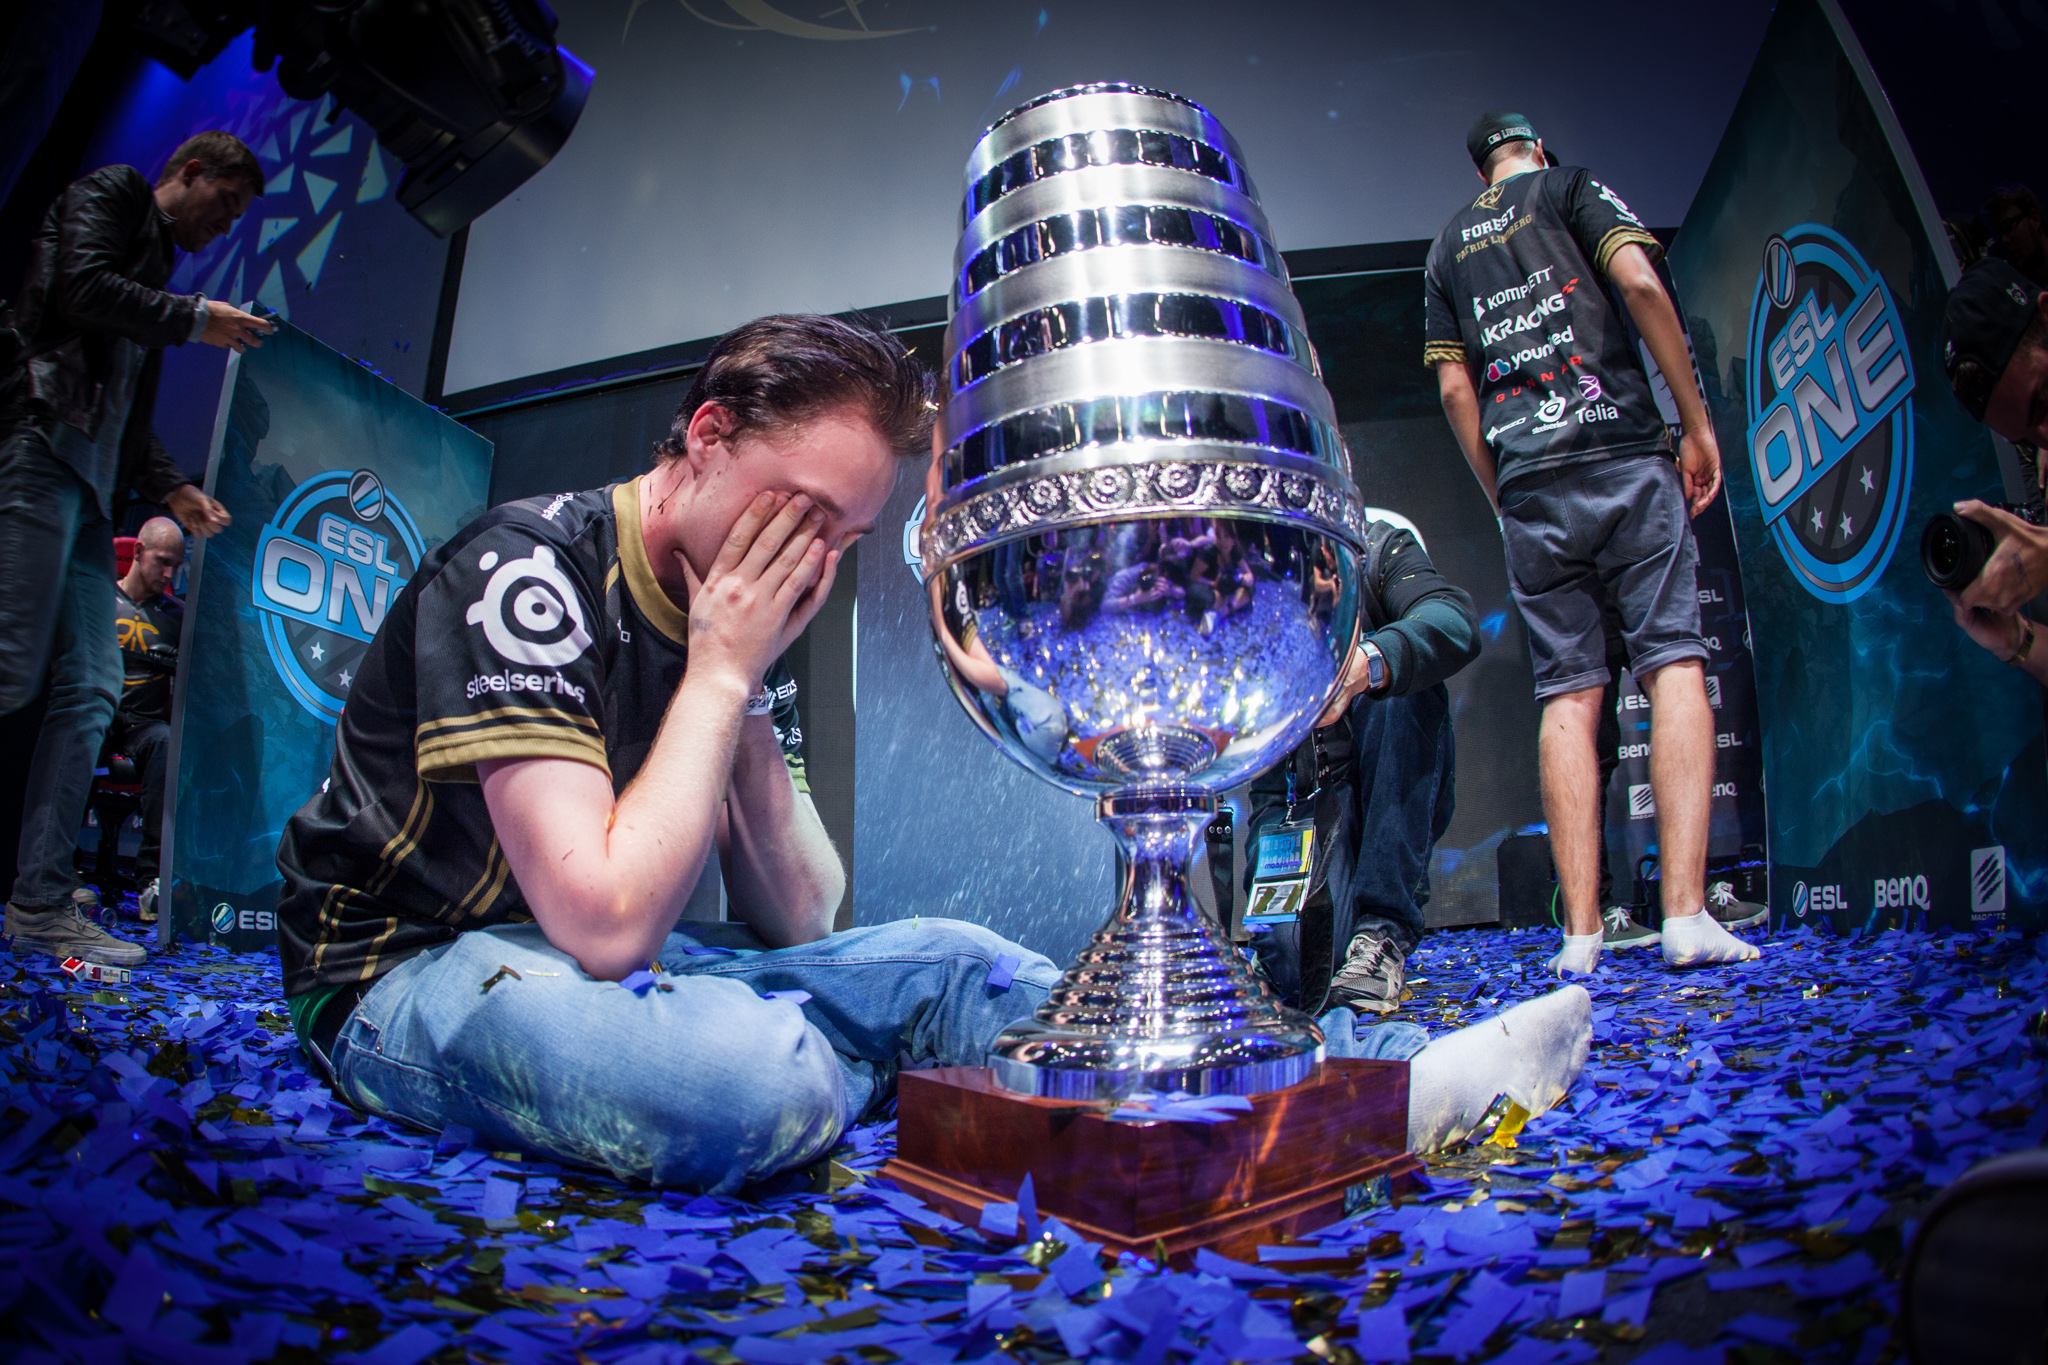 Get_Right is overcome by emotions as his tem Ninjas in Pyjamas claims the ESL One Cologne 2014 Major title. This one is special to me. It wasn't a big stage or a stadium, it was just pure raw emotion and too date this is one of my favorite esports moments!